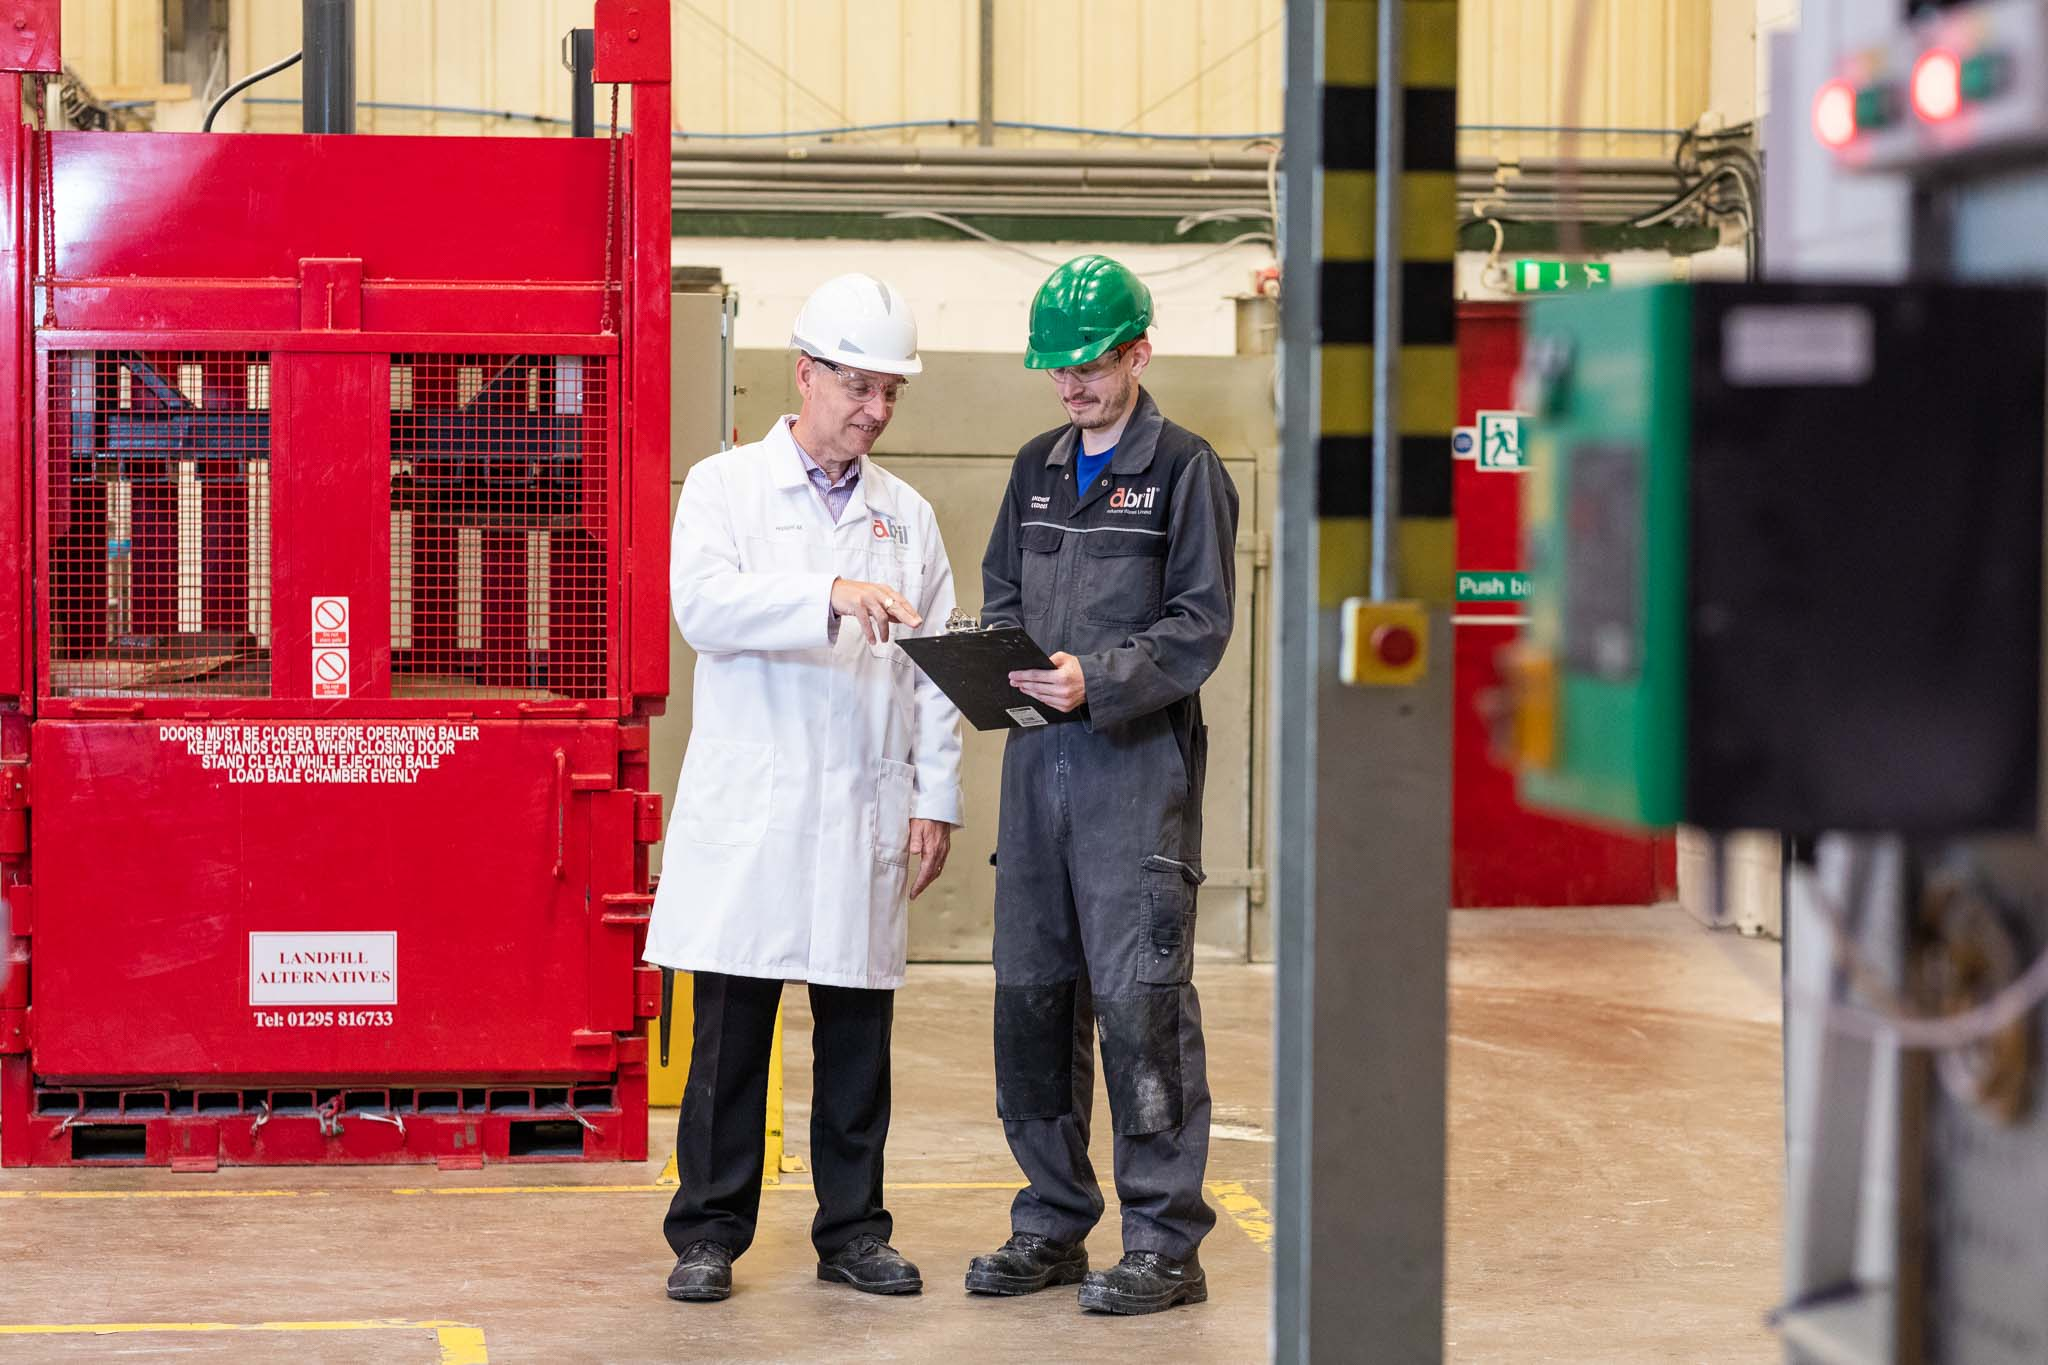 commerical_industrial_photographer_wales_1.jpg